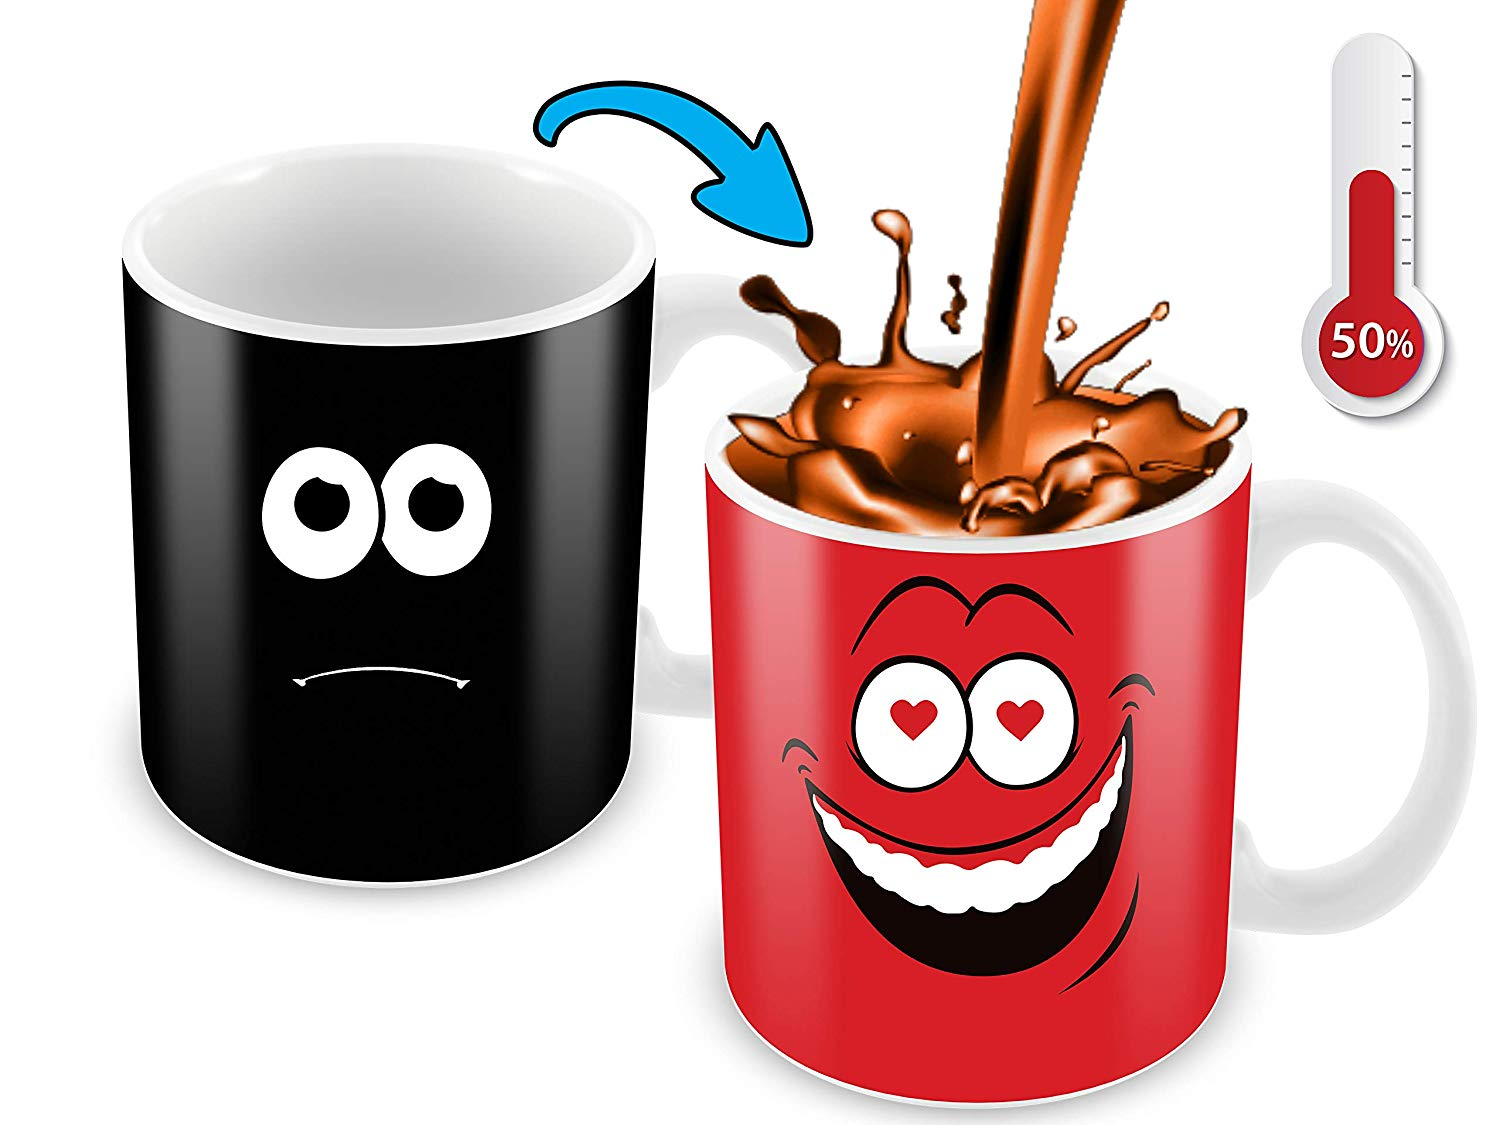 Heat Sensitive Color Changing Coffee Mug Funny Coffee Cup Red Loved Funny Face Design Funny Gift Idea B079FRF6YM